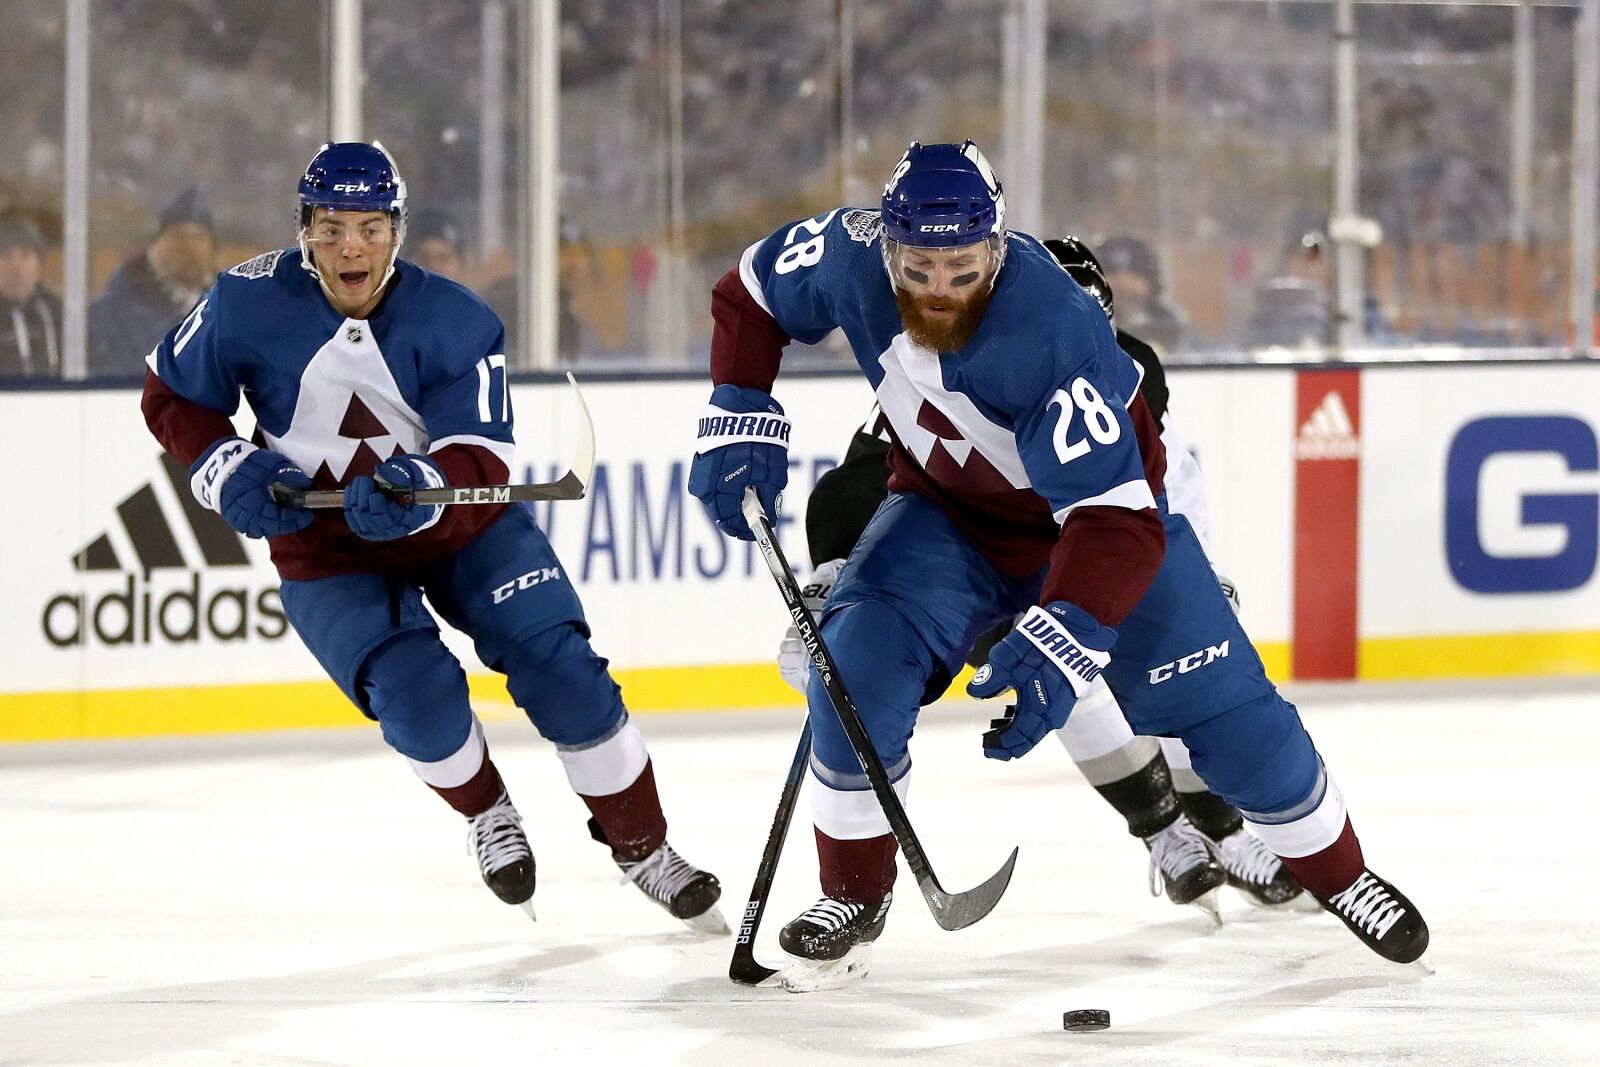 Colorado Avalanche: Do the Latest Injuries Change Trade Deadline Approach?